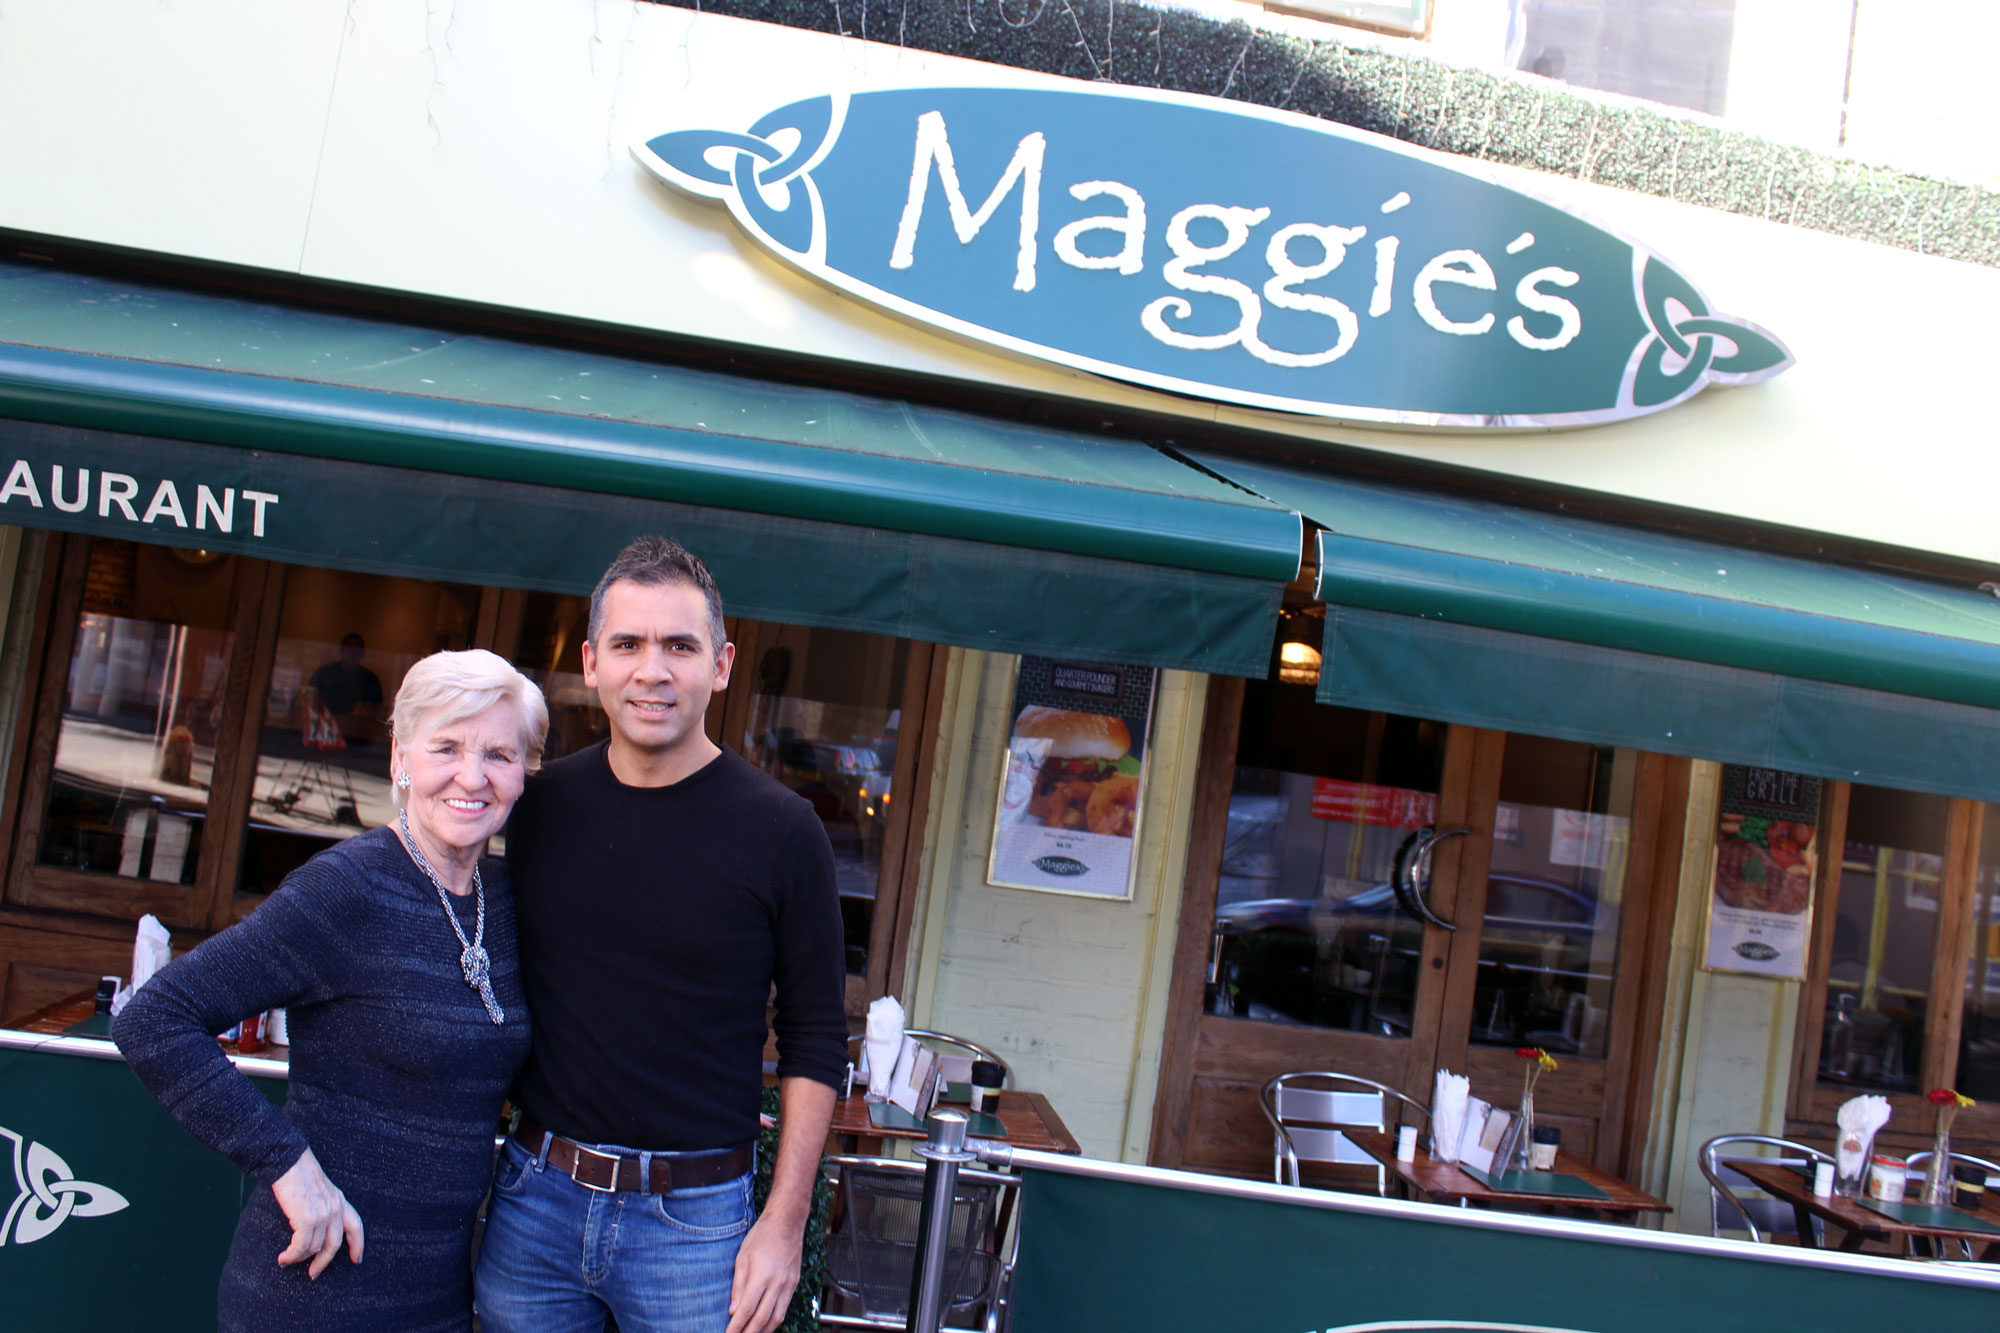 maggies-cafe-lewisham-london5